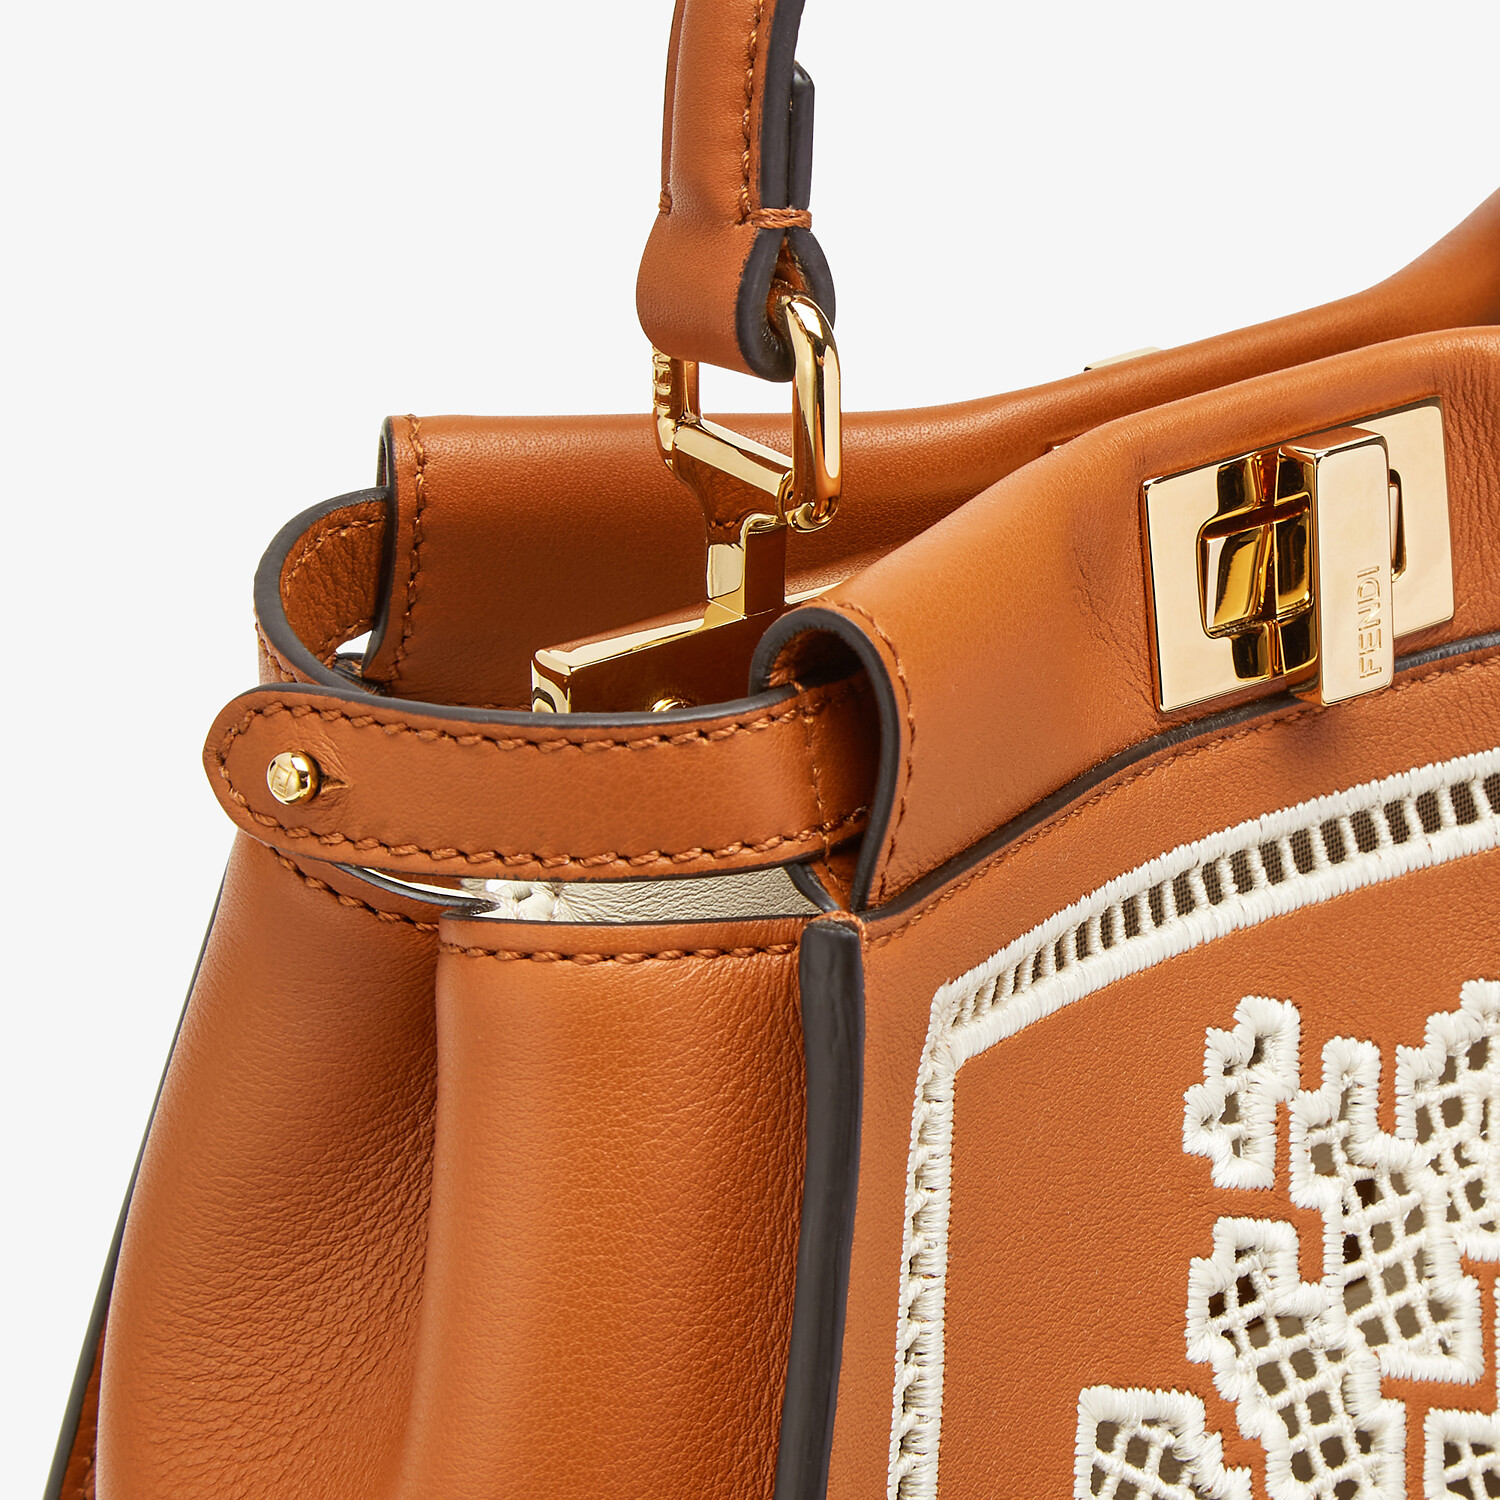 FENDI PEEKABOO ICONIC MINI - Tasche aus Leder in Braun mit Stickerei - view 6 detail